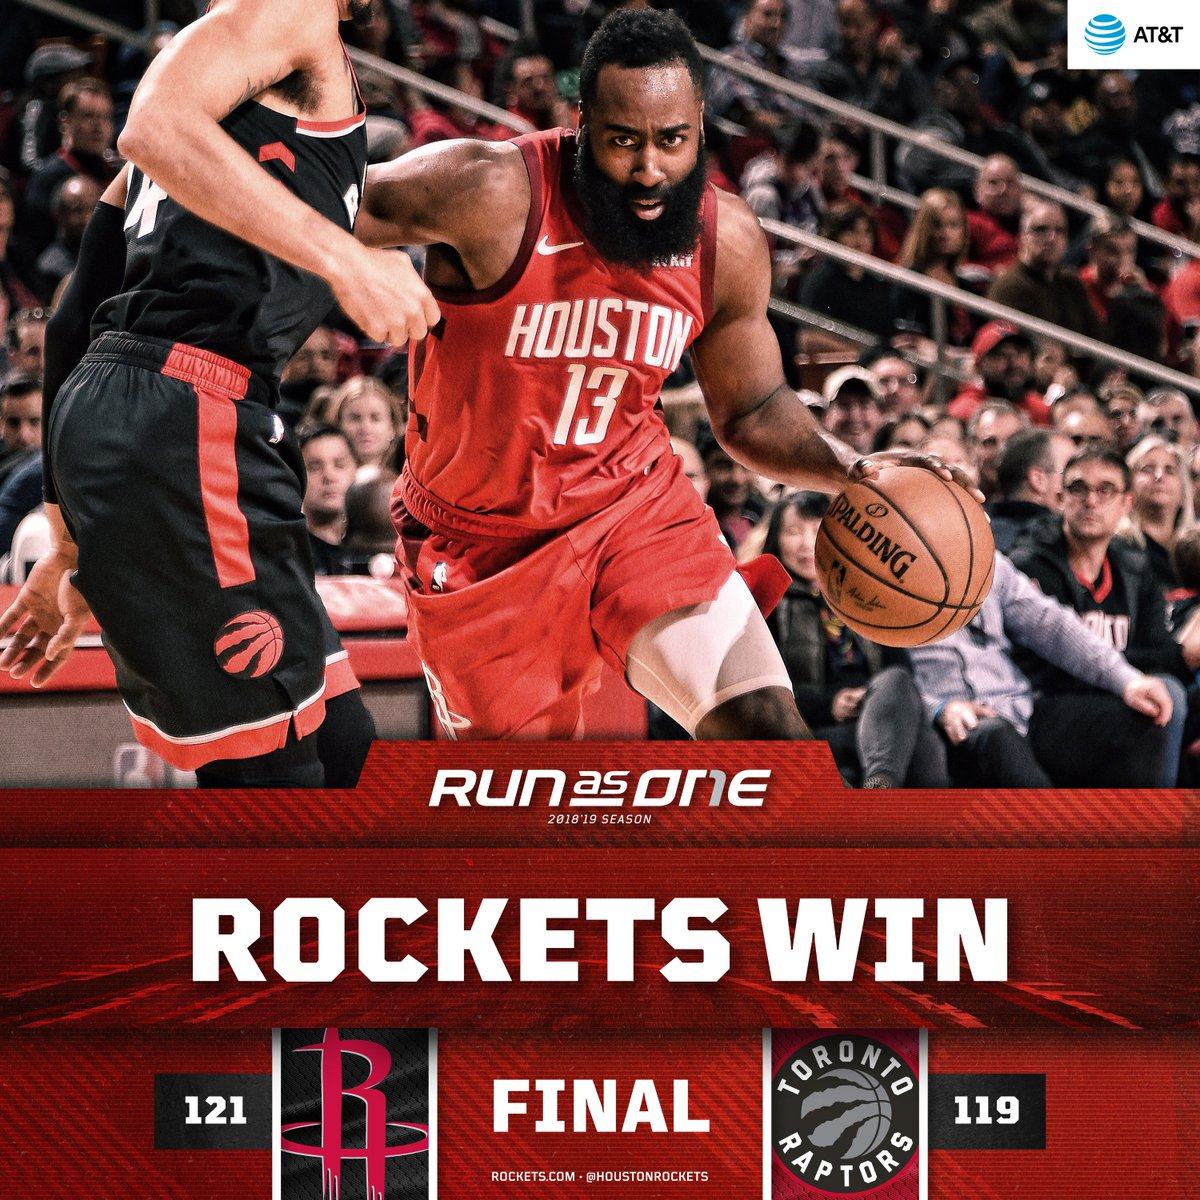 Houston Rockets News Today: Big Friday Night Win In H-Town! Https://t.co/VyoBwdIMGN